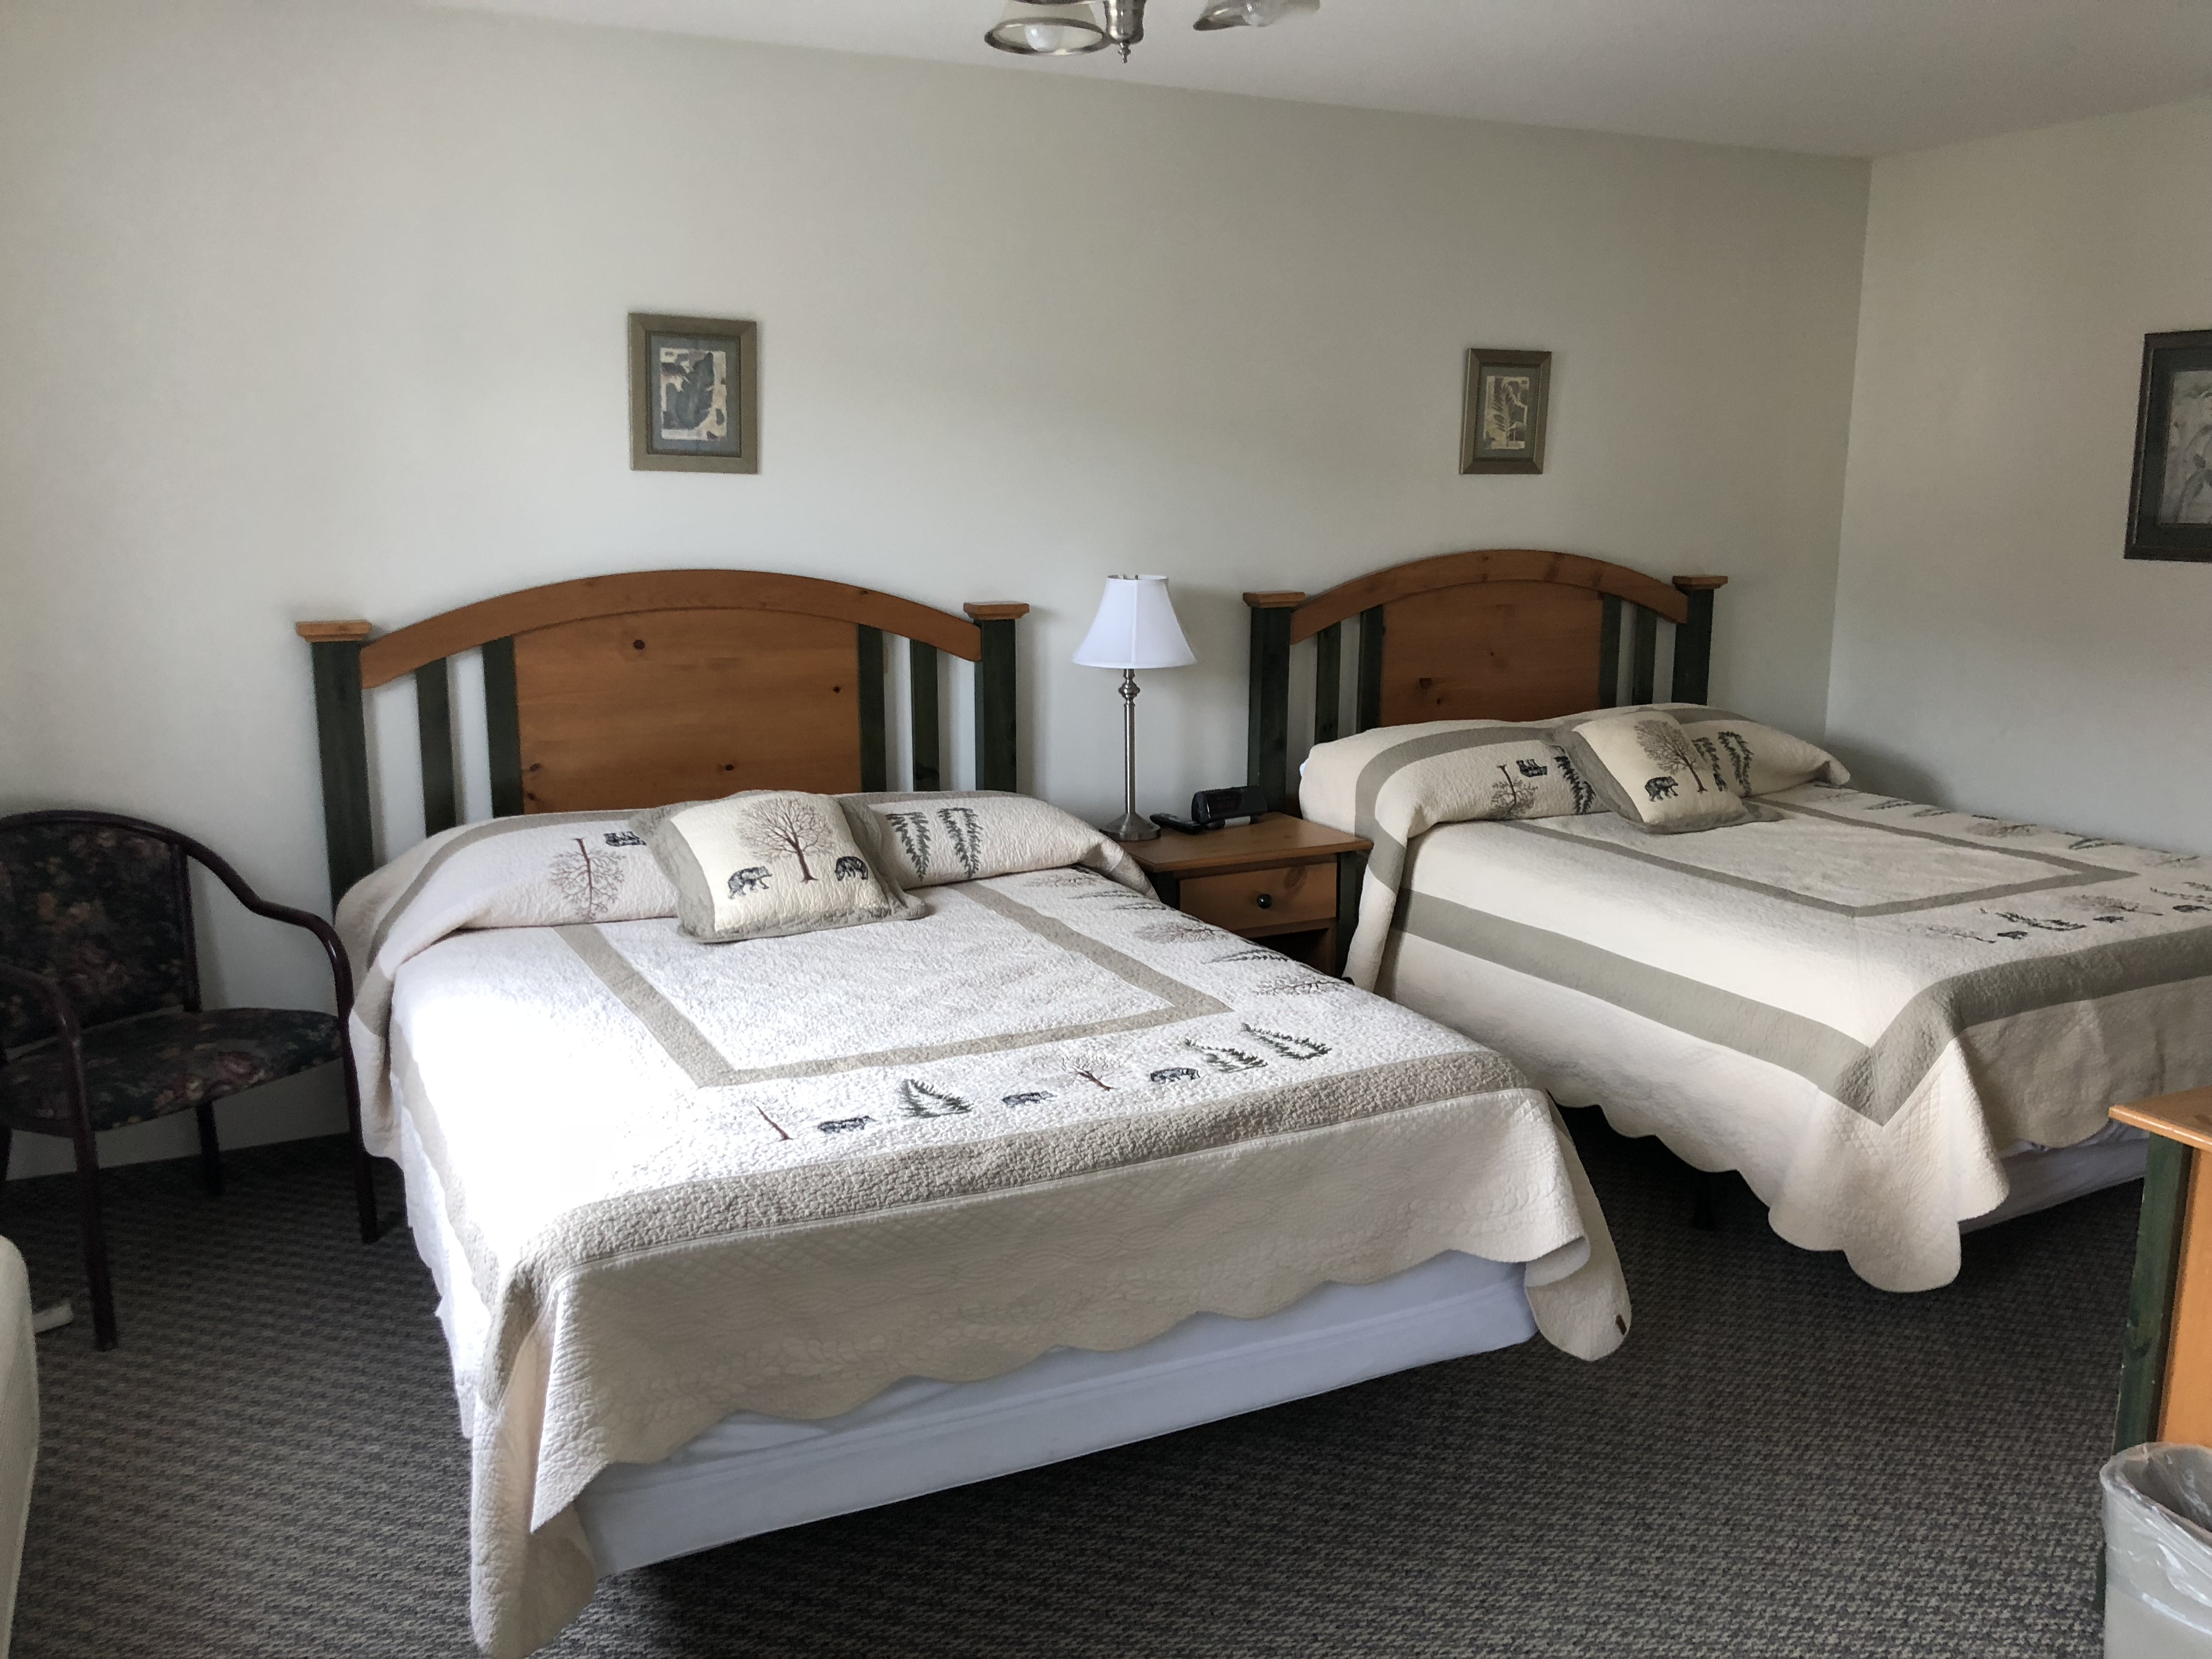 Picture of: Downtown Jasper Private Room 2 Queen Beds Boutique Hotels For Rent In Jasper Alberta Canada